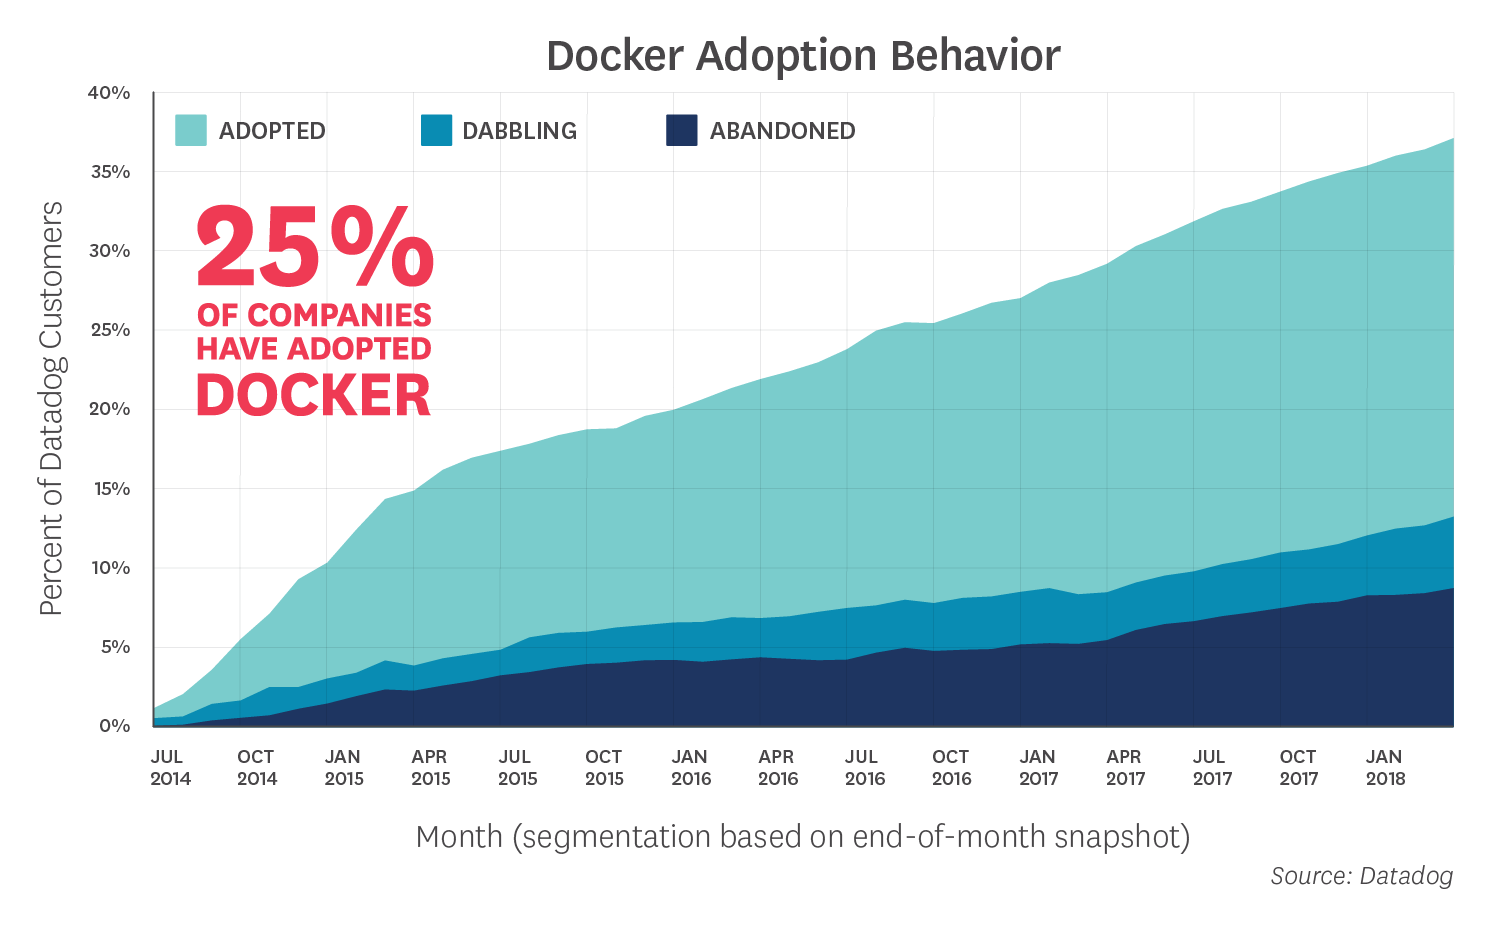 8 surprising facts about real Docker adoption.